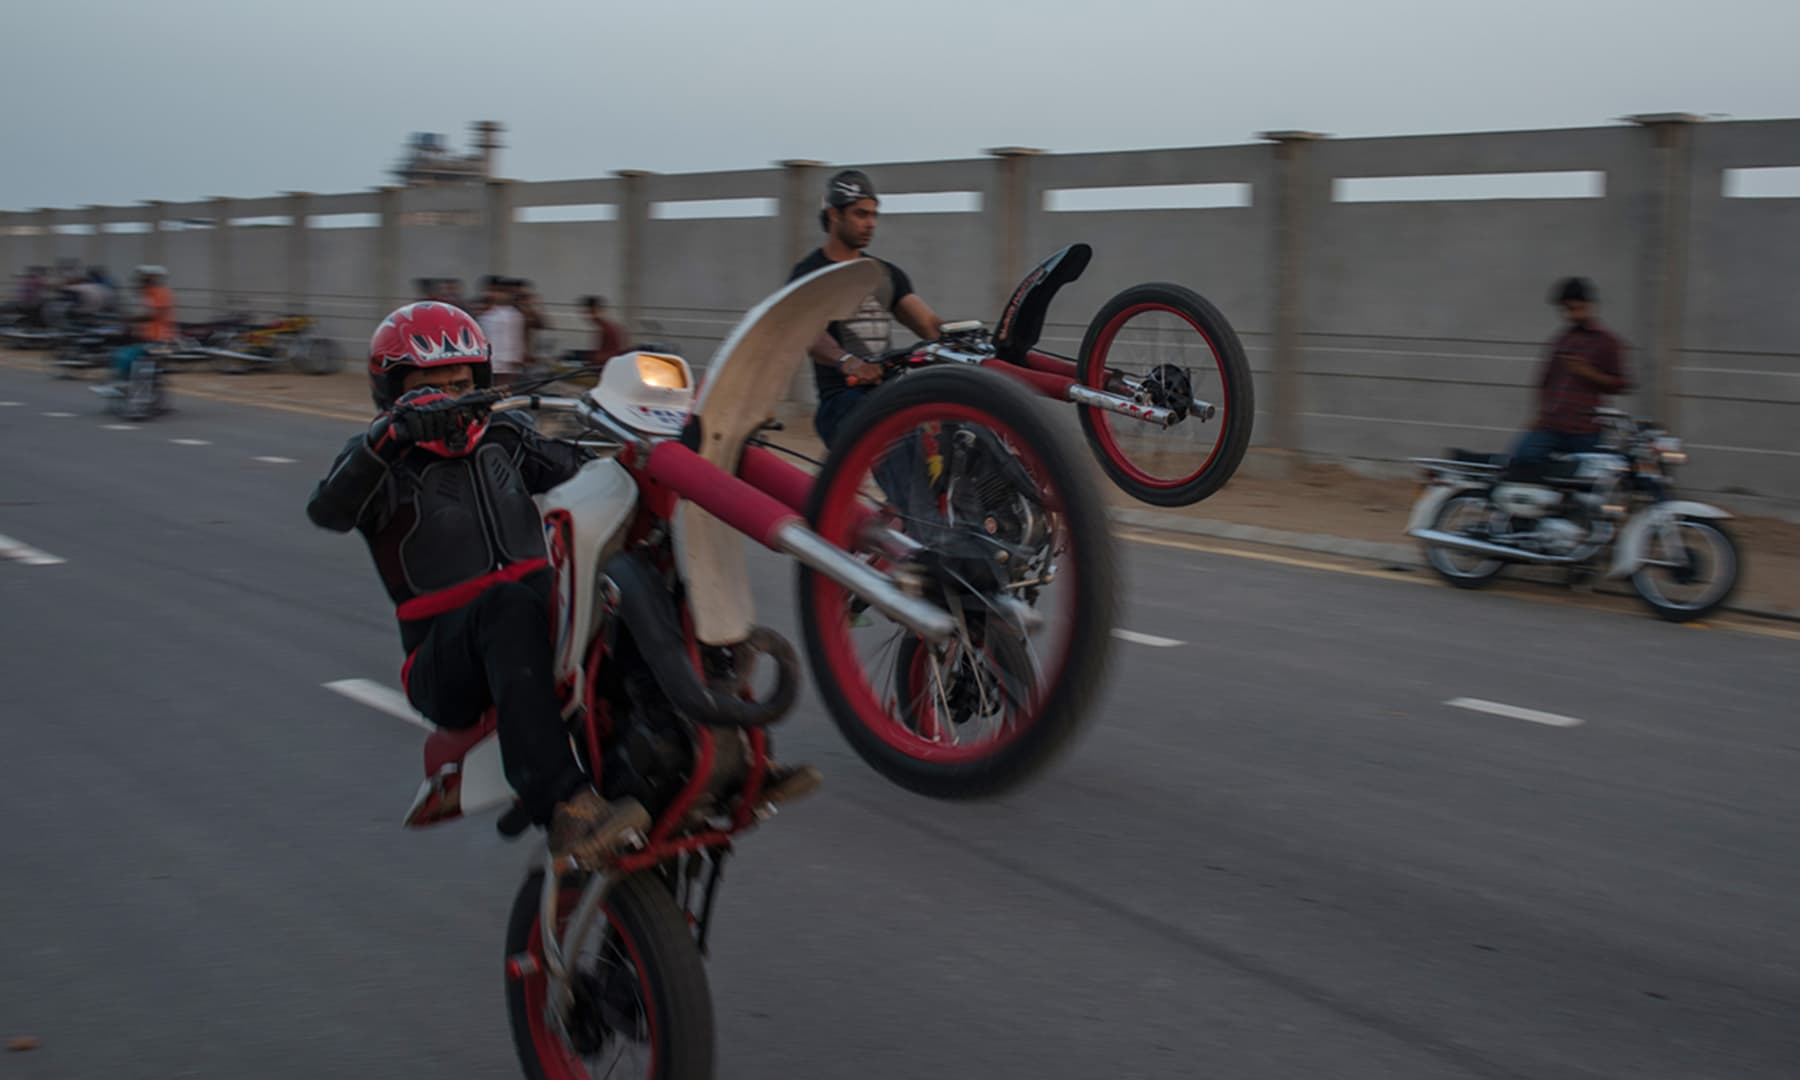 Two bikers show off their skills near Seaview, Karachi